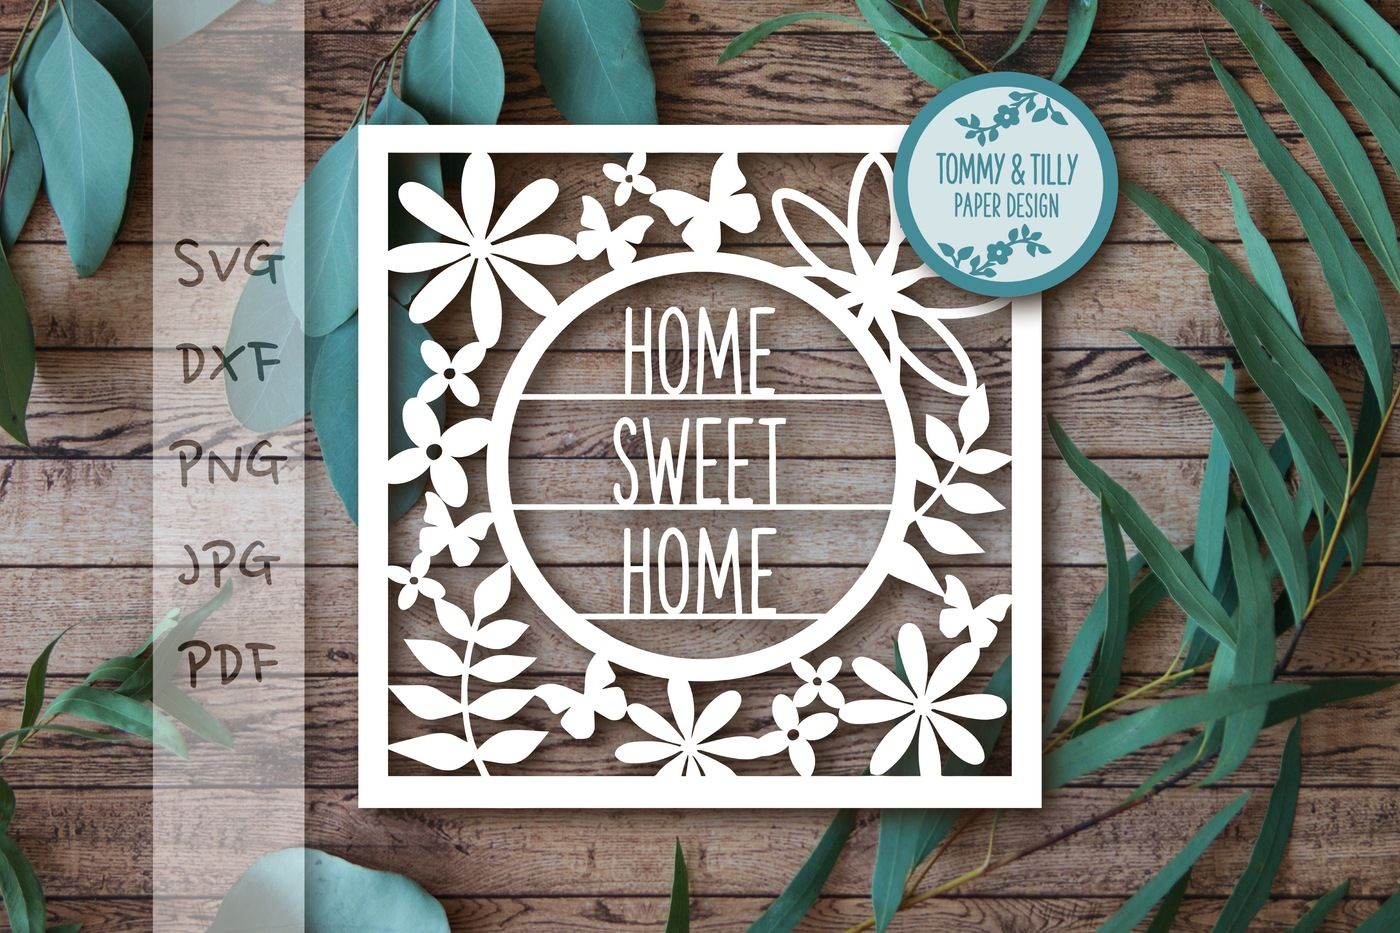 Home Sweet Home Round Frame Svg Dxf Png Pdf Jpg By Tommy And Tilly